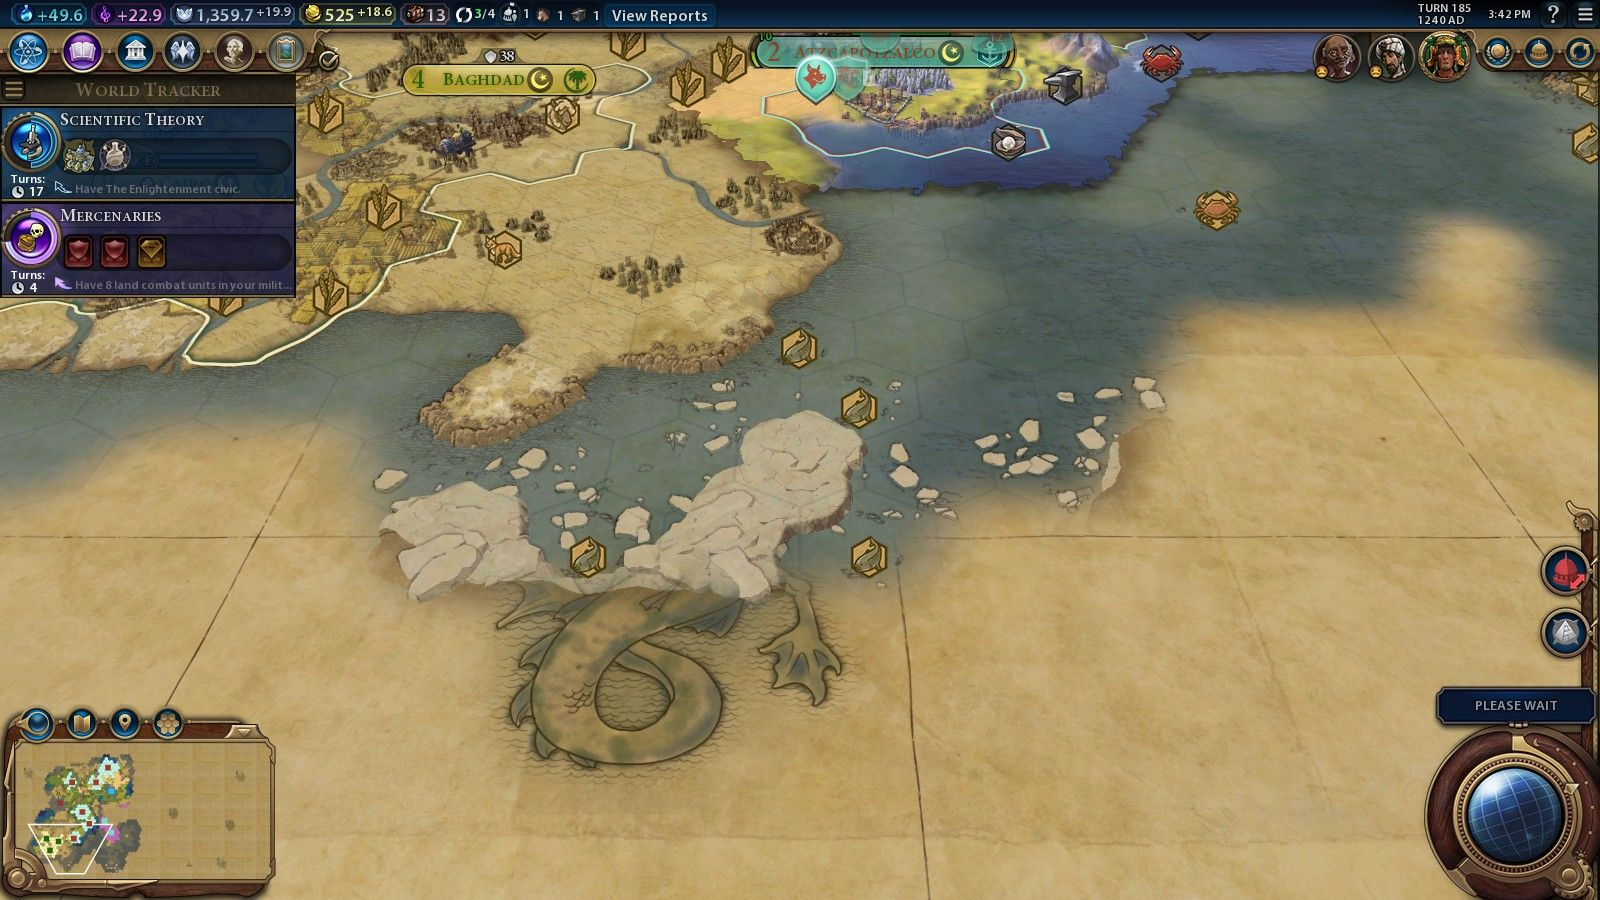 The sea creature on my map turned out to be made of stone #CivilizationBeyondEarth #gaming #Civilization #games #world #steam #SidMeier #RTS